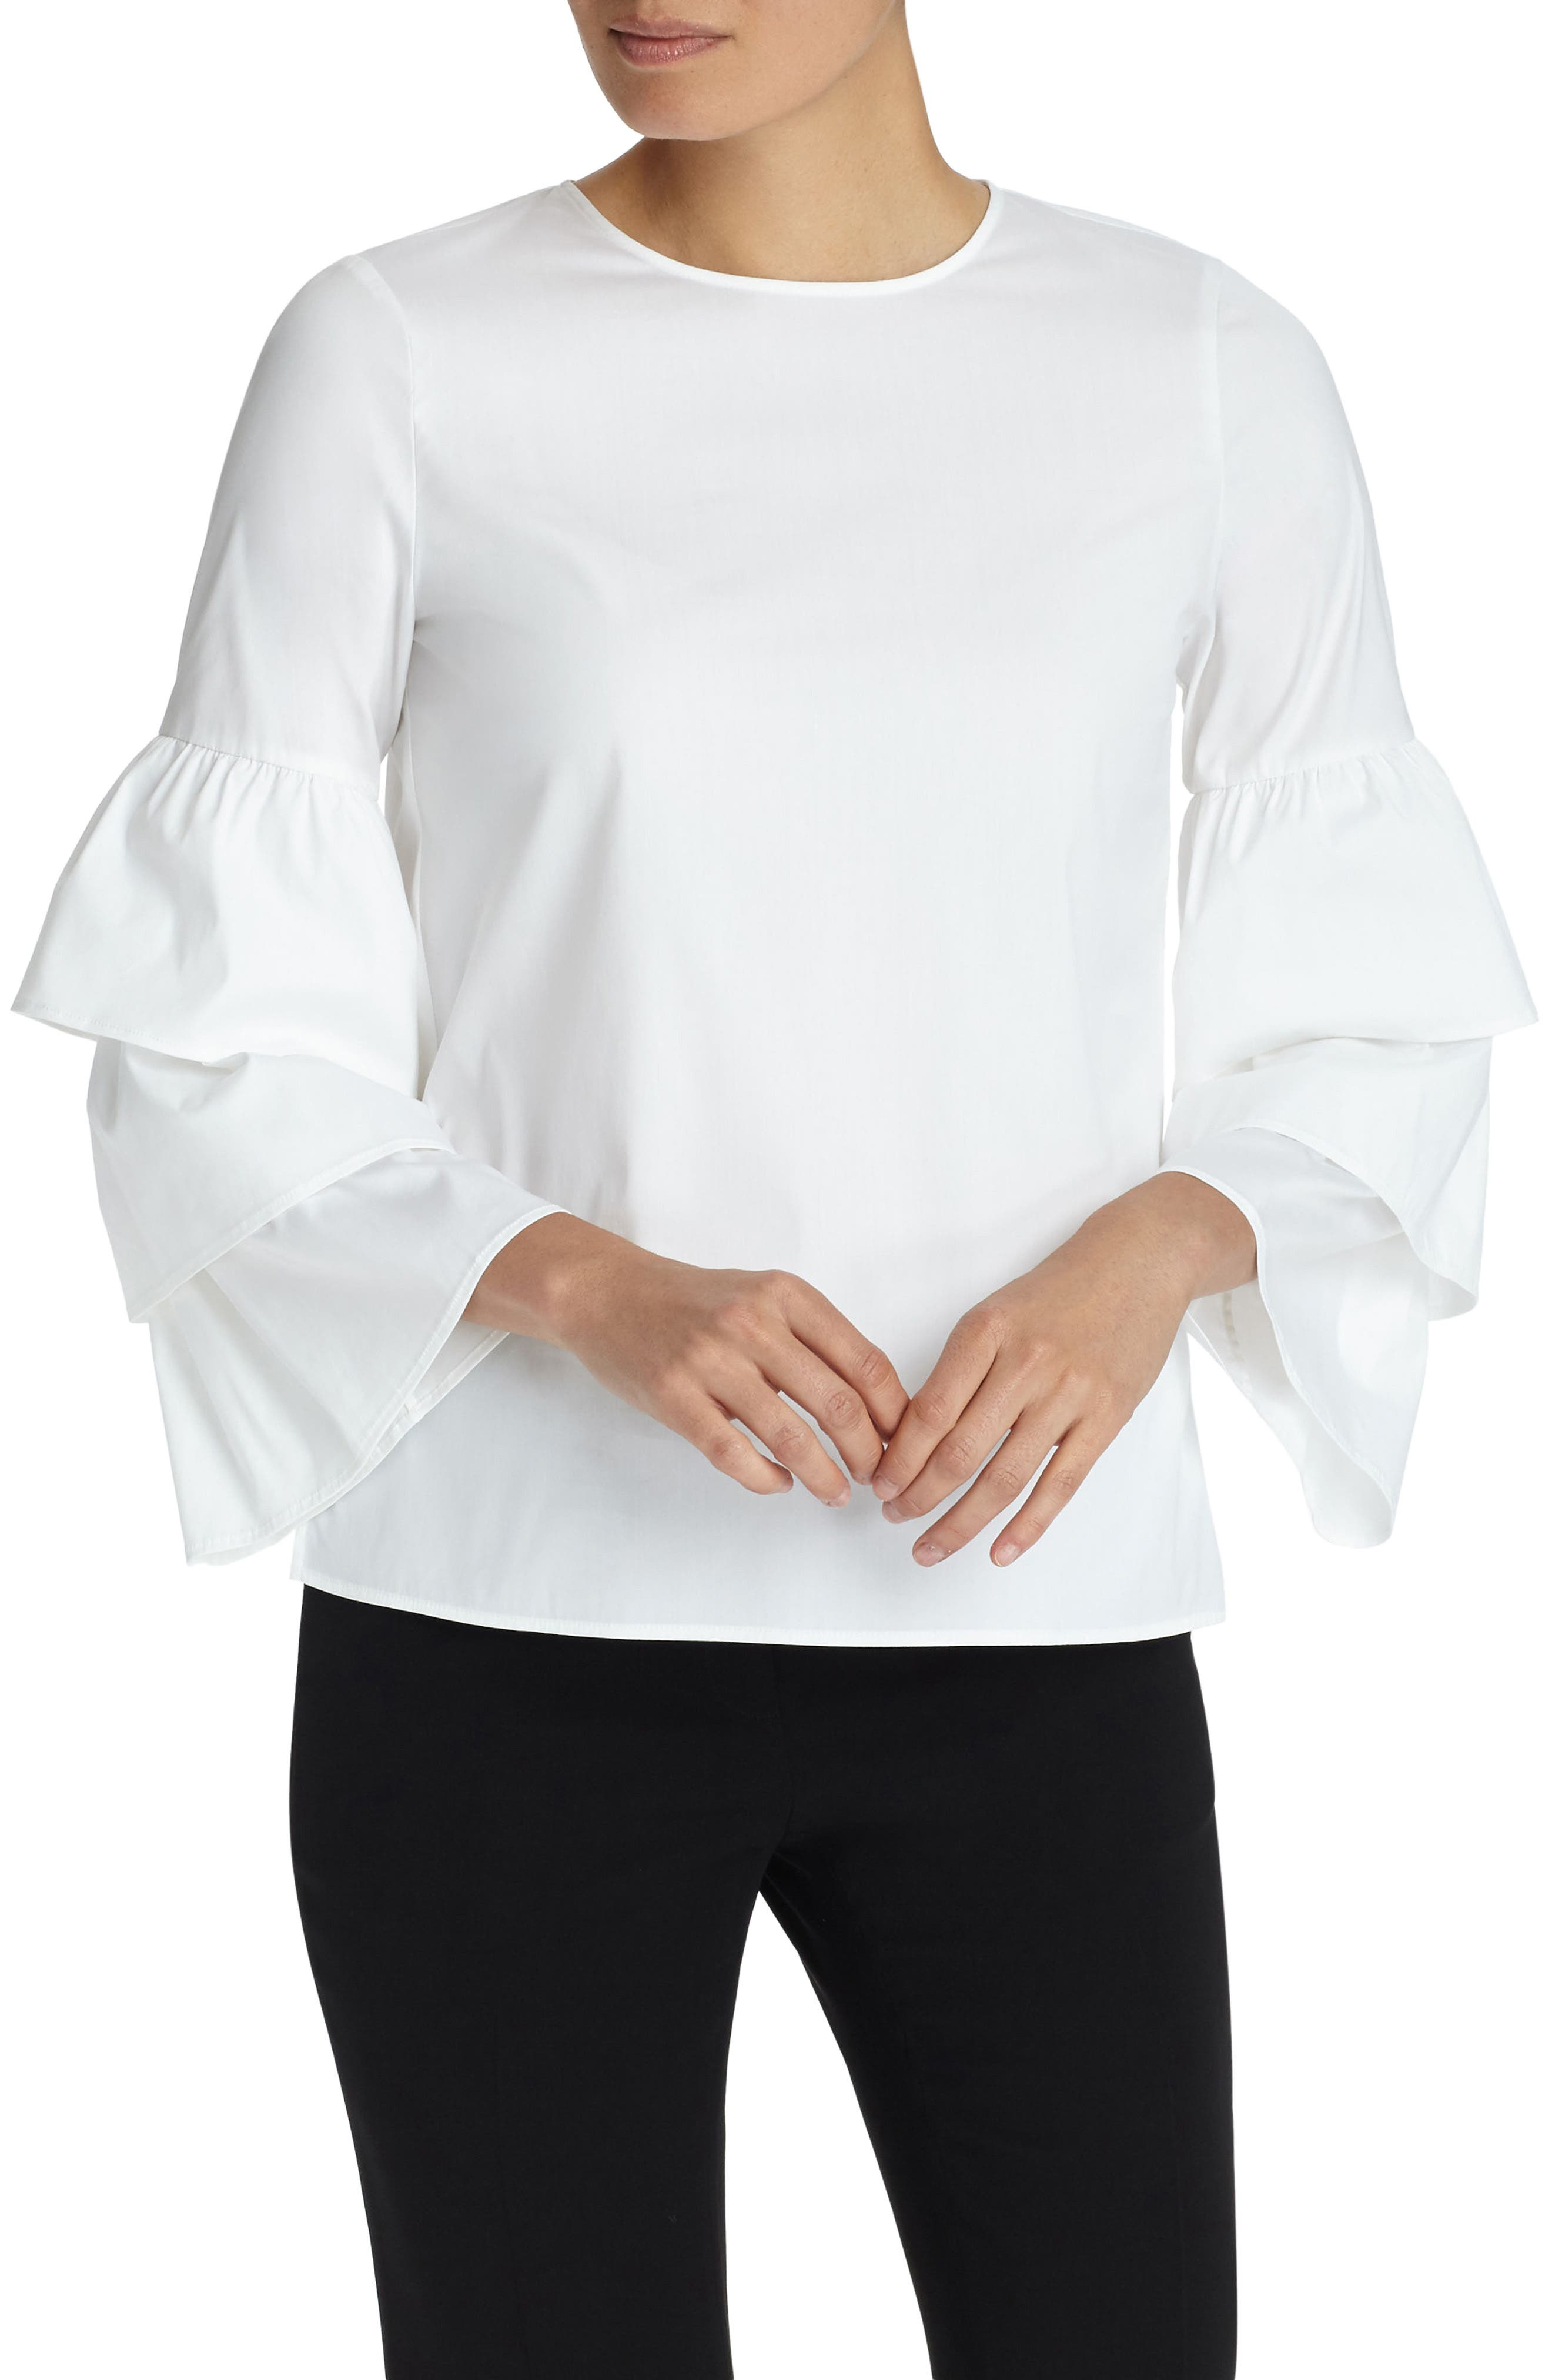 Alternate Image 1 Selected - Lafayette 148 New York Revina Stretch Cotton Blend Blouse